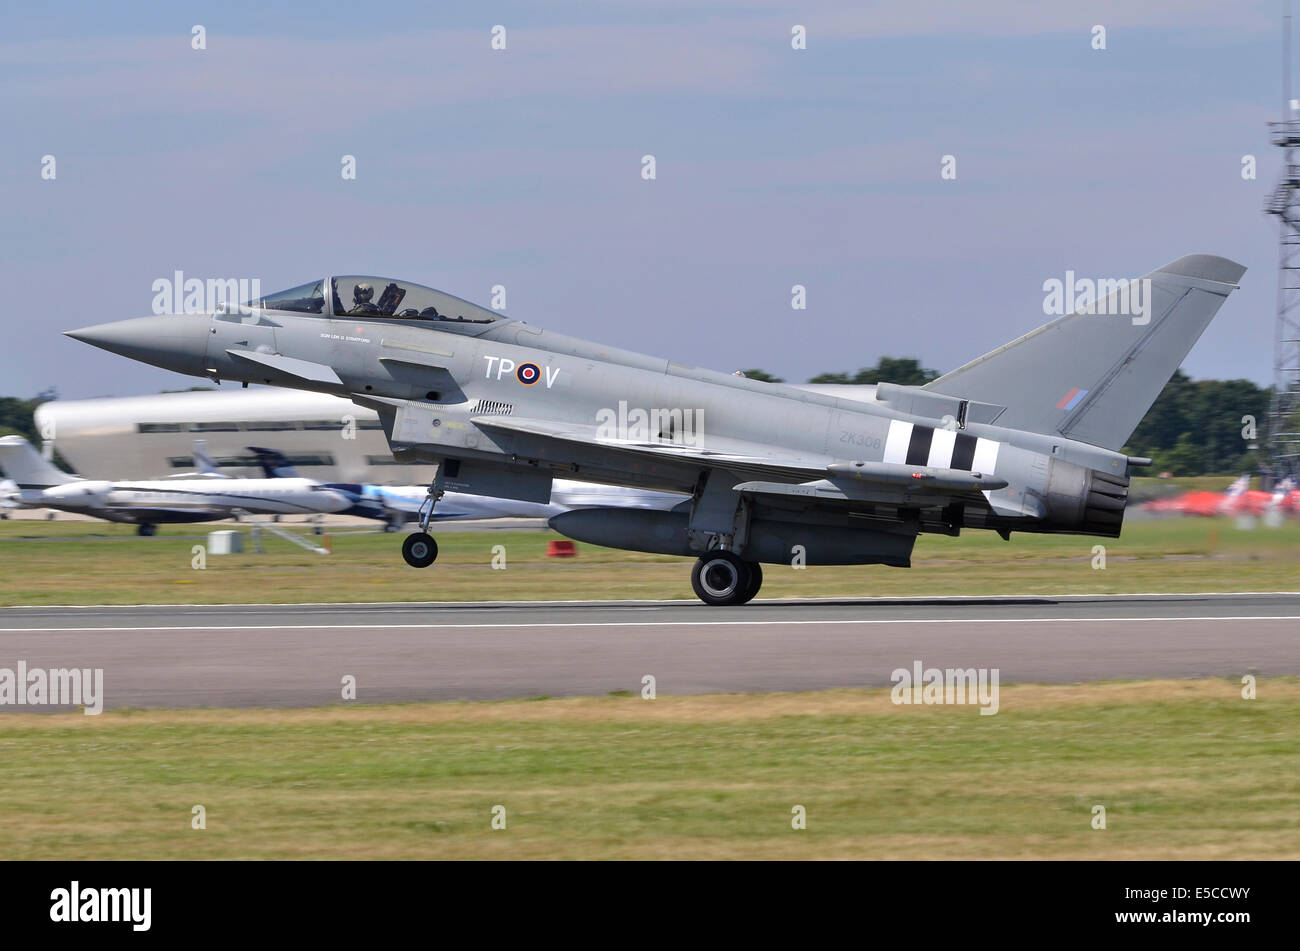 Eurofighter Typhoon FGR4 aircraft operated by the RAF landing after displaying at Farnborough Airshow 2014 - Stock Image